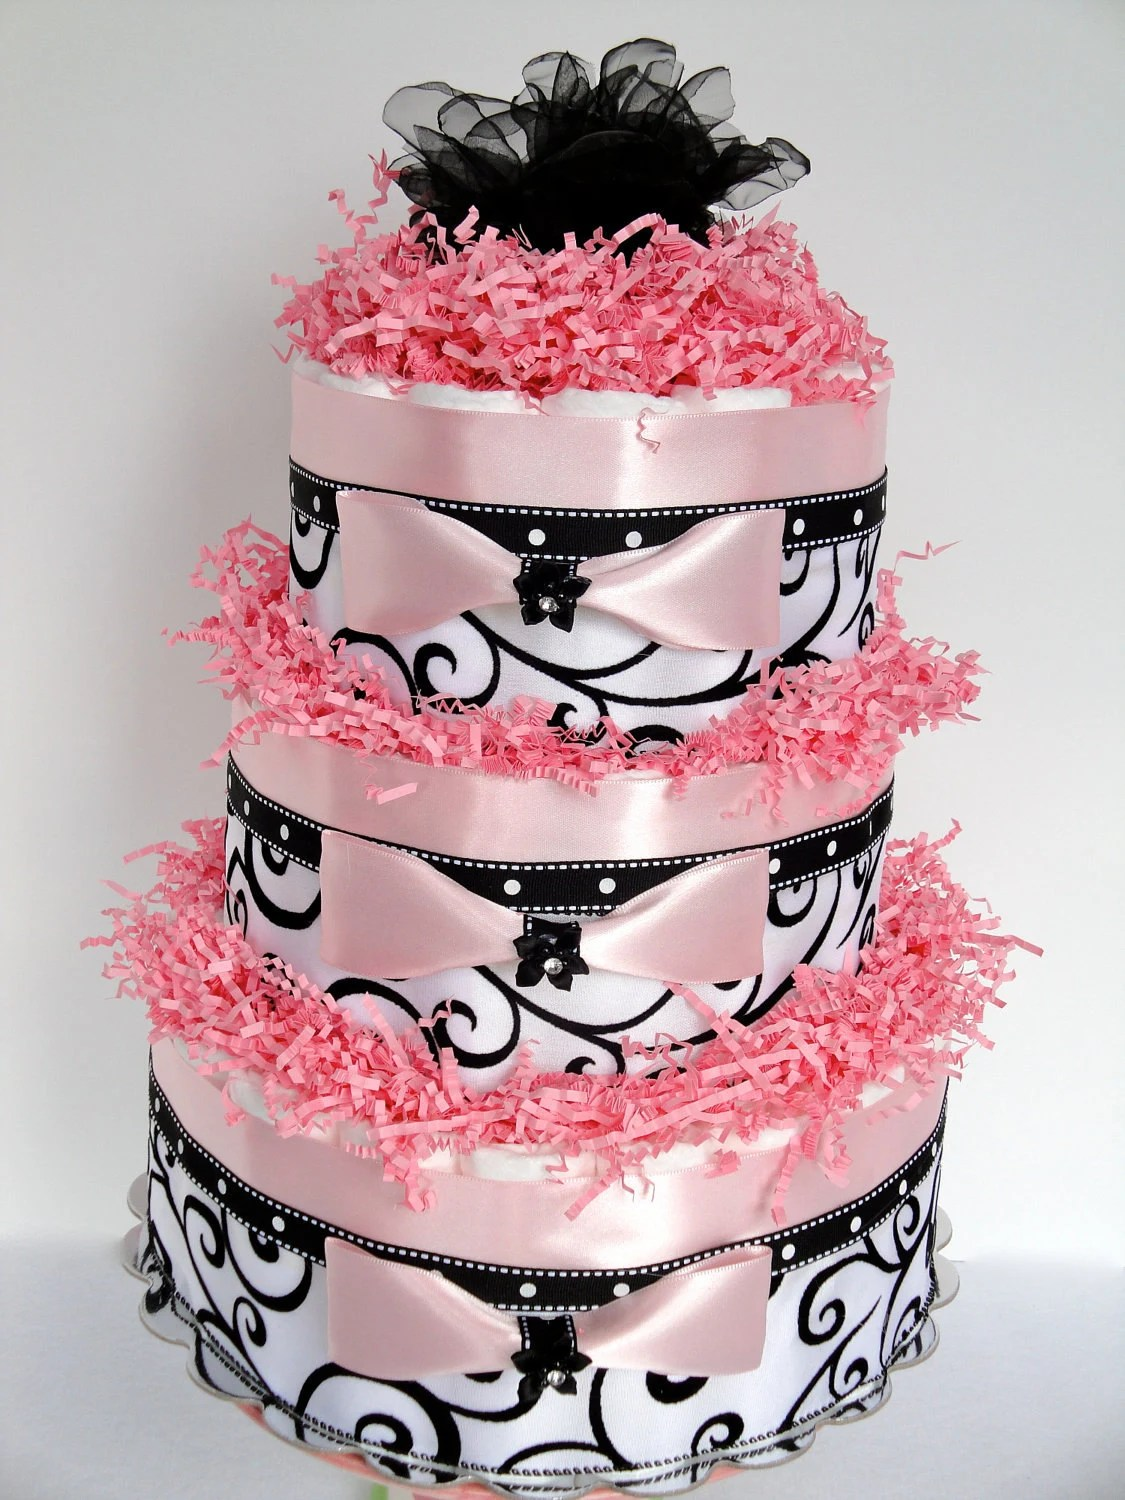 Diaper Cake - Black, Pink & White Damask Elegance Baby Shower Diaper Cake Centerpiece  - 3 Tier